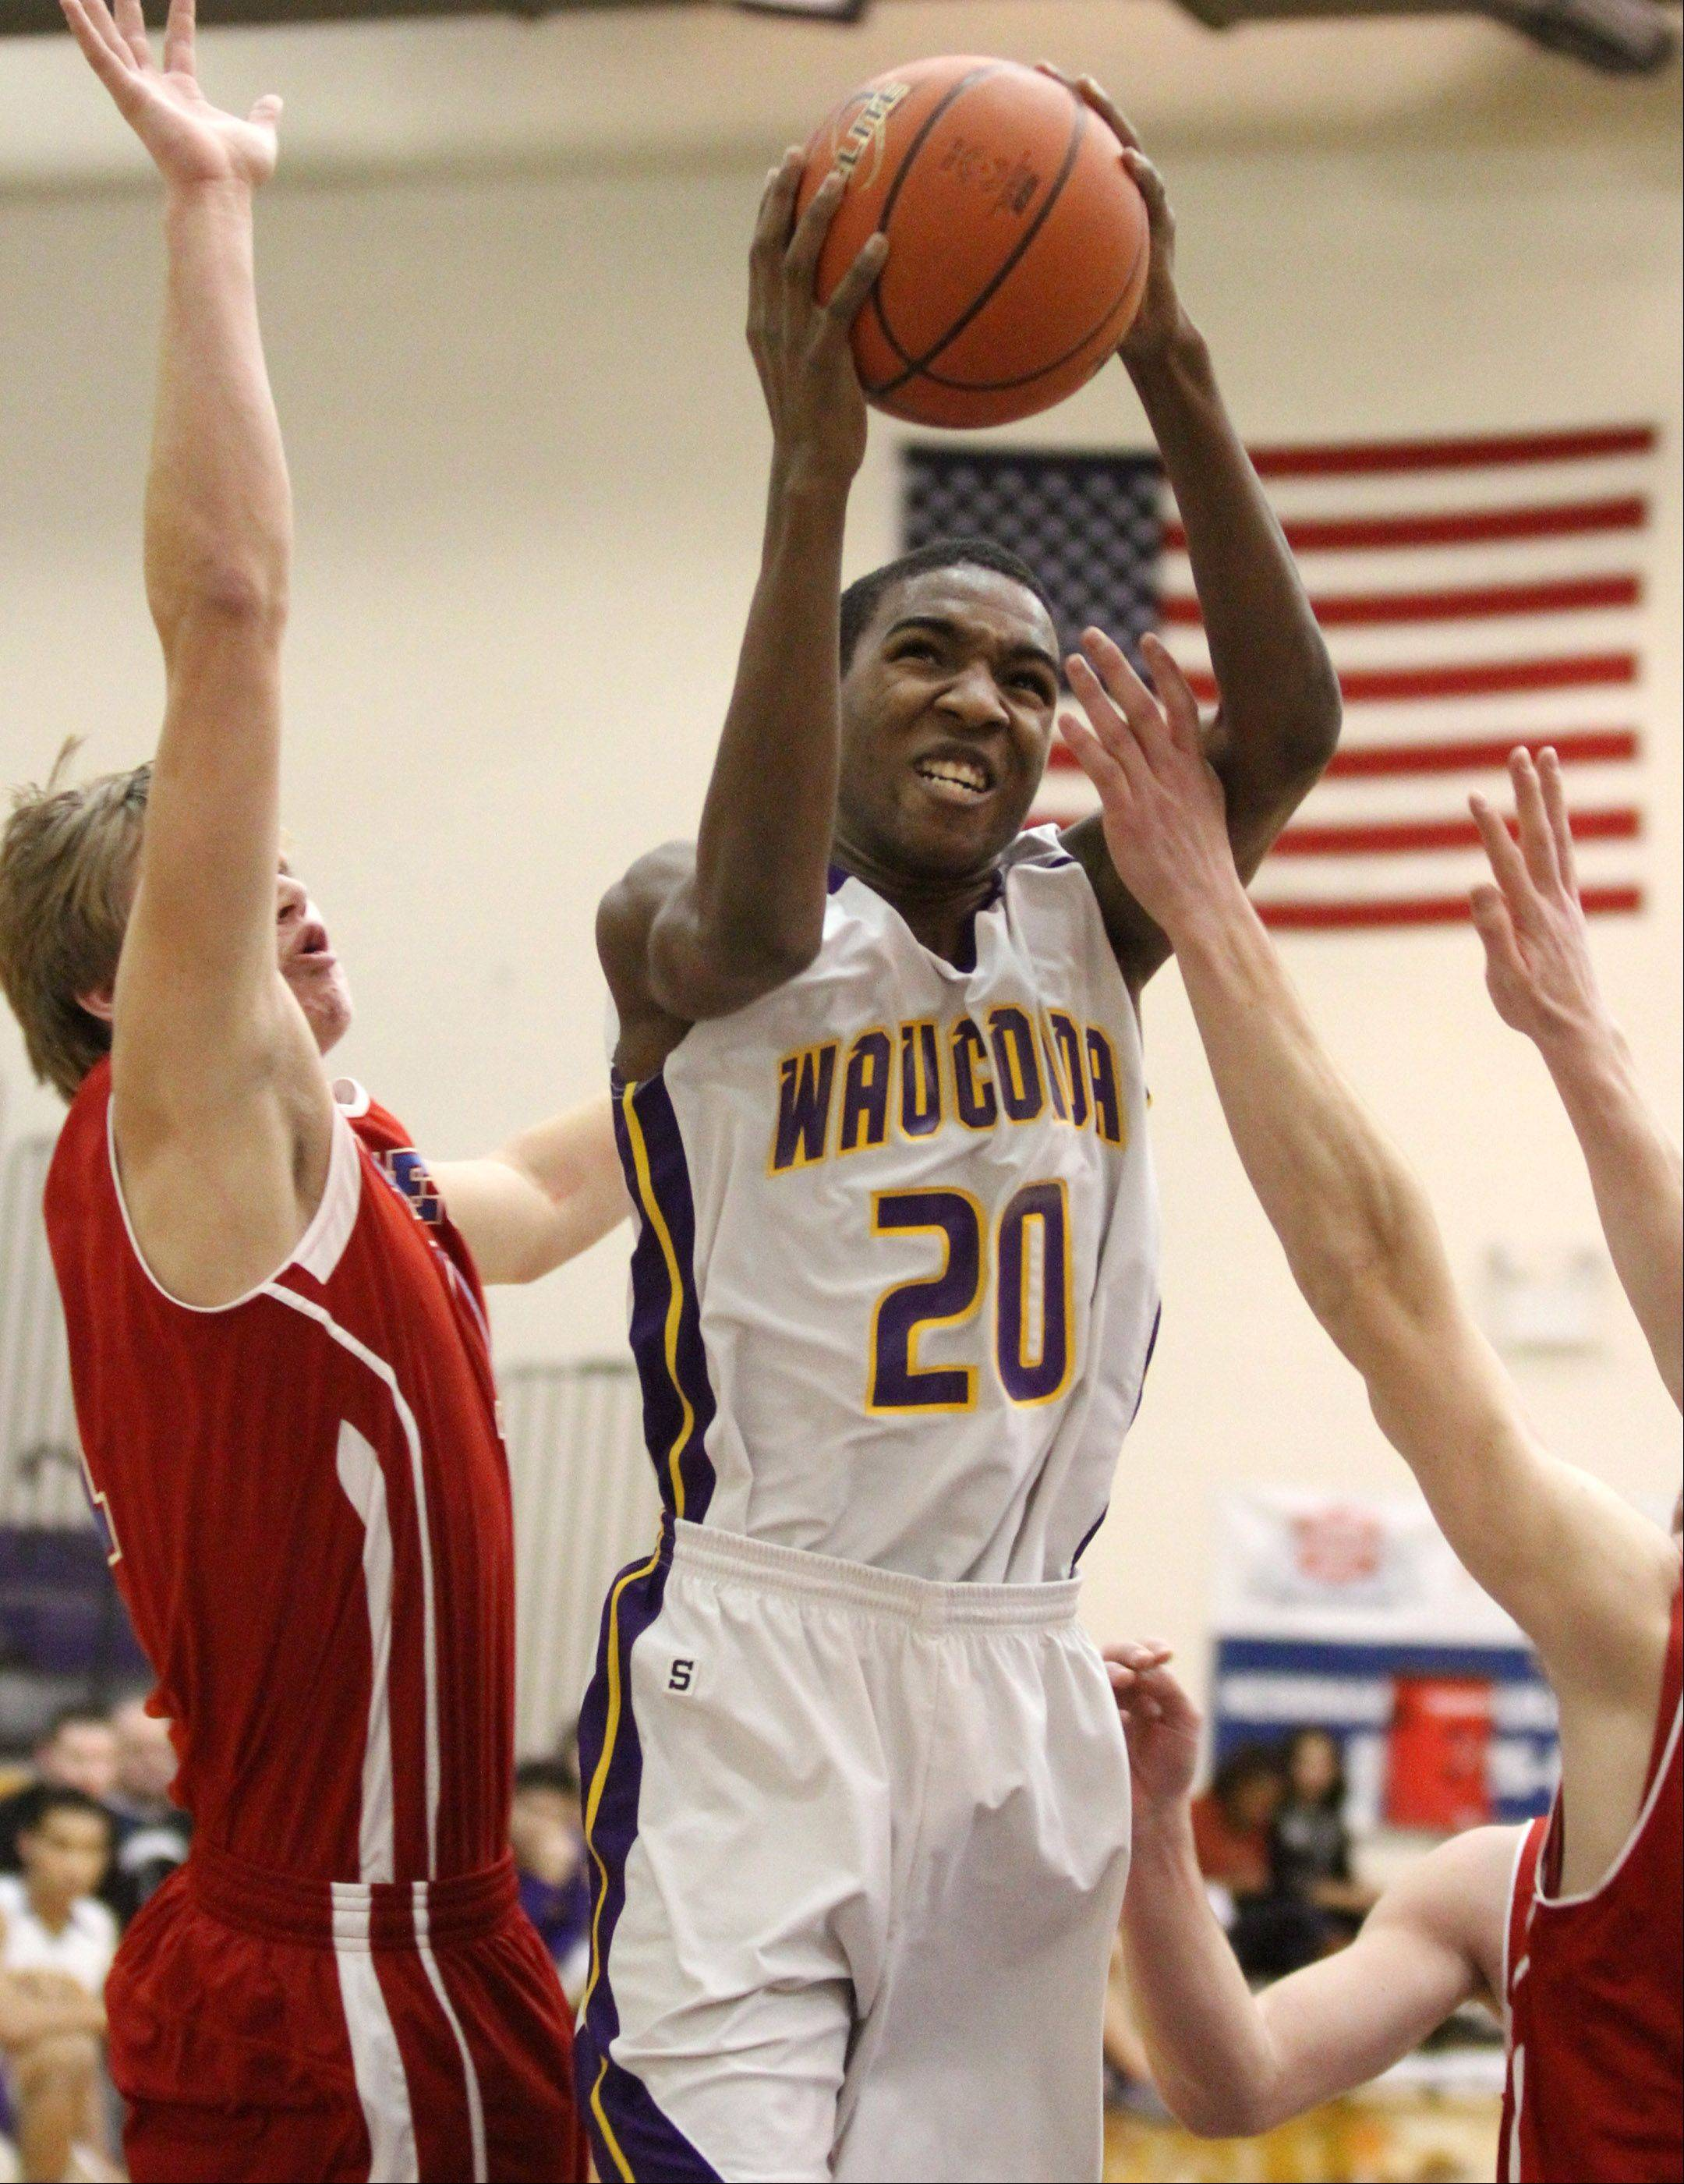 Wauconda's Devon King puts the ball up against a Lakes defender at Wauconda on Friday.